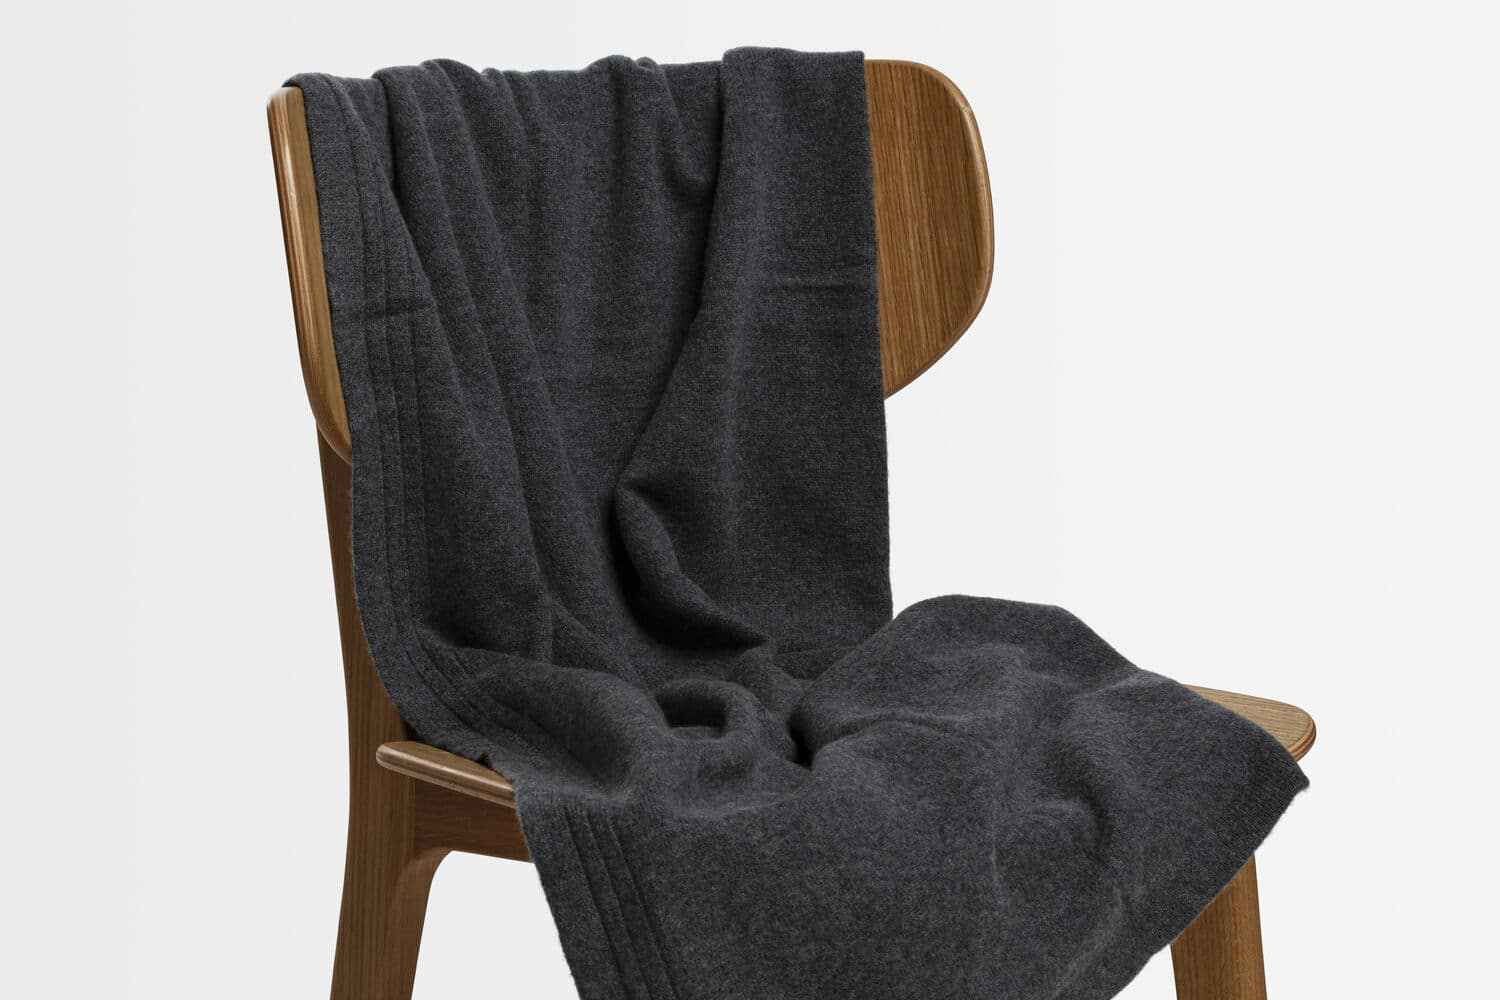 italian cashmere jersey throw in charcoal